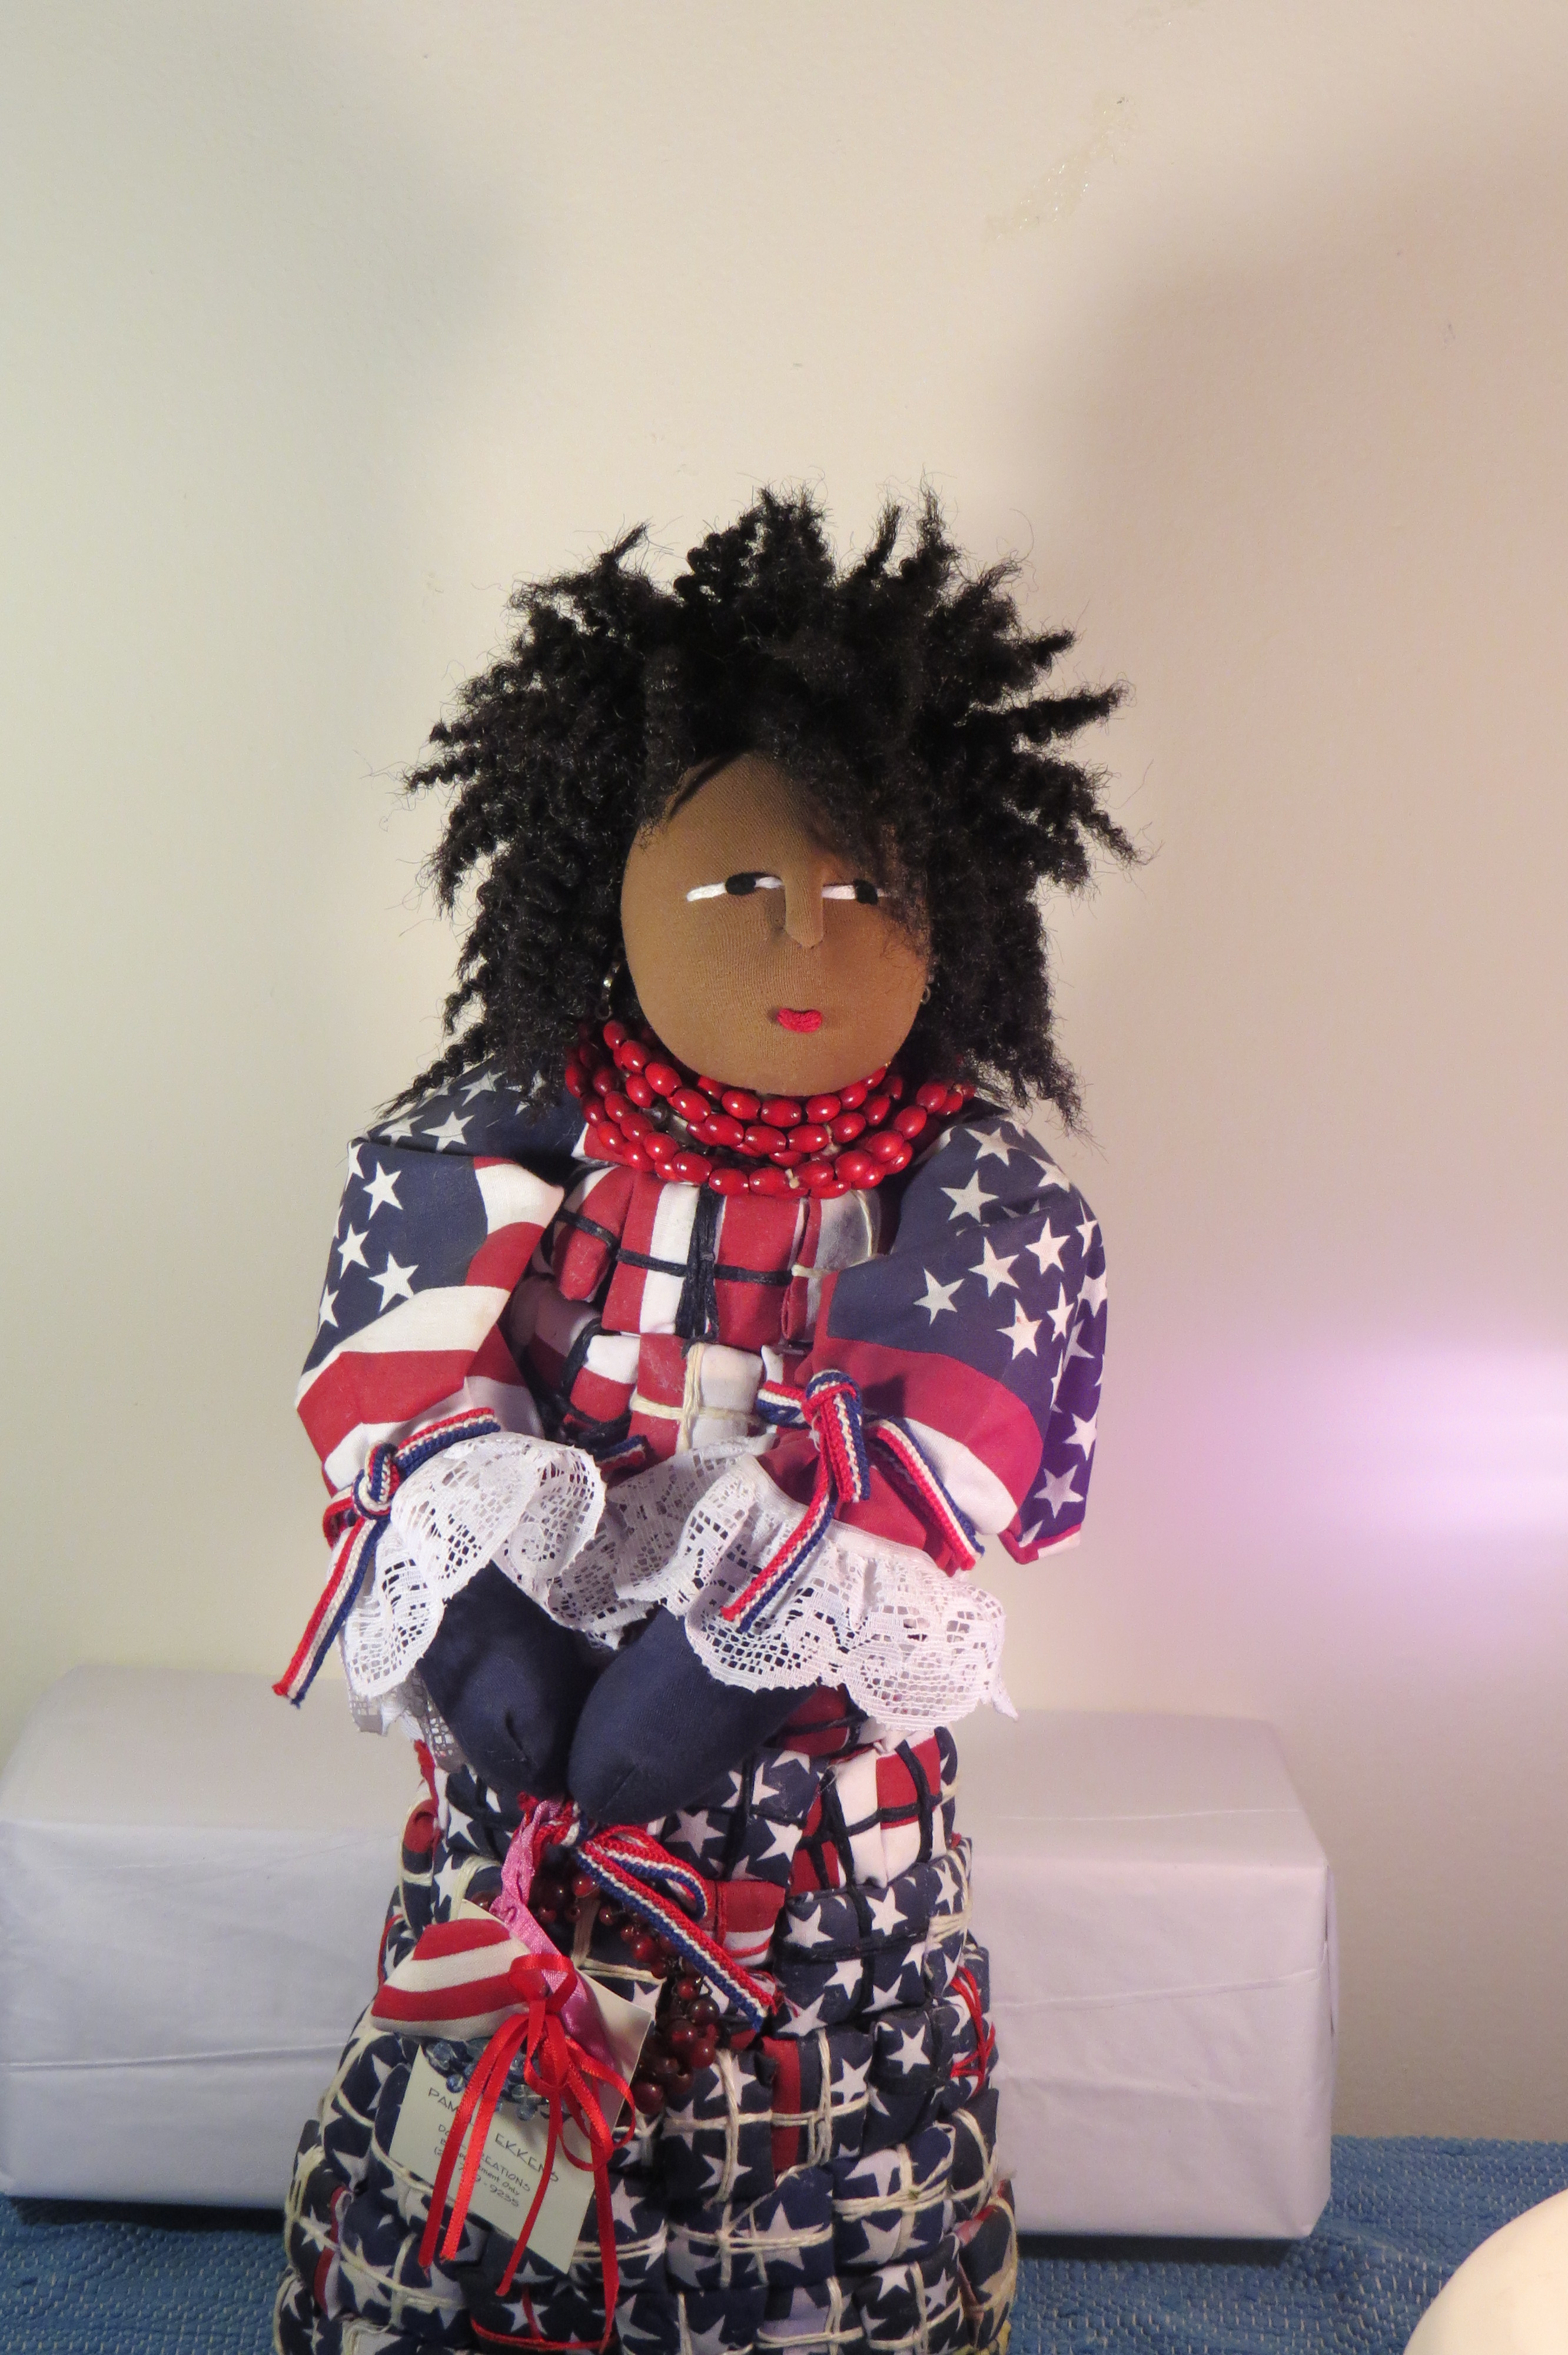 Brooklyn's Black Doll Artists Showcase One of a Kind Dolls at Harlem Doll Show December 3